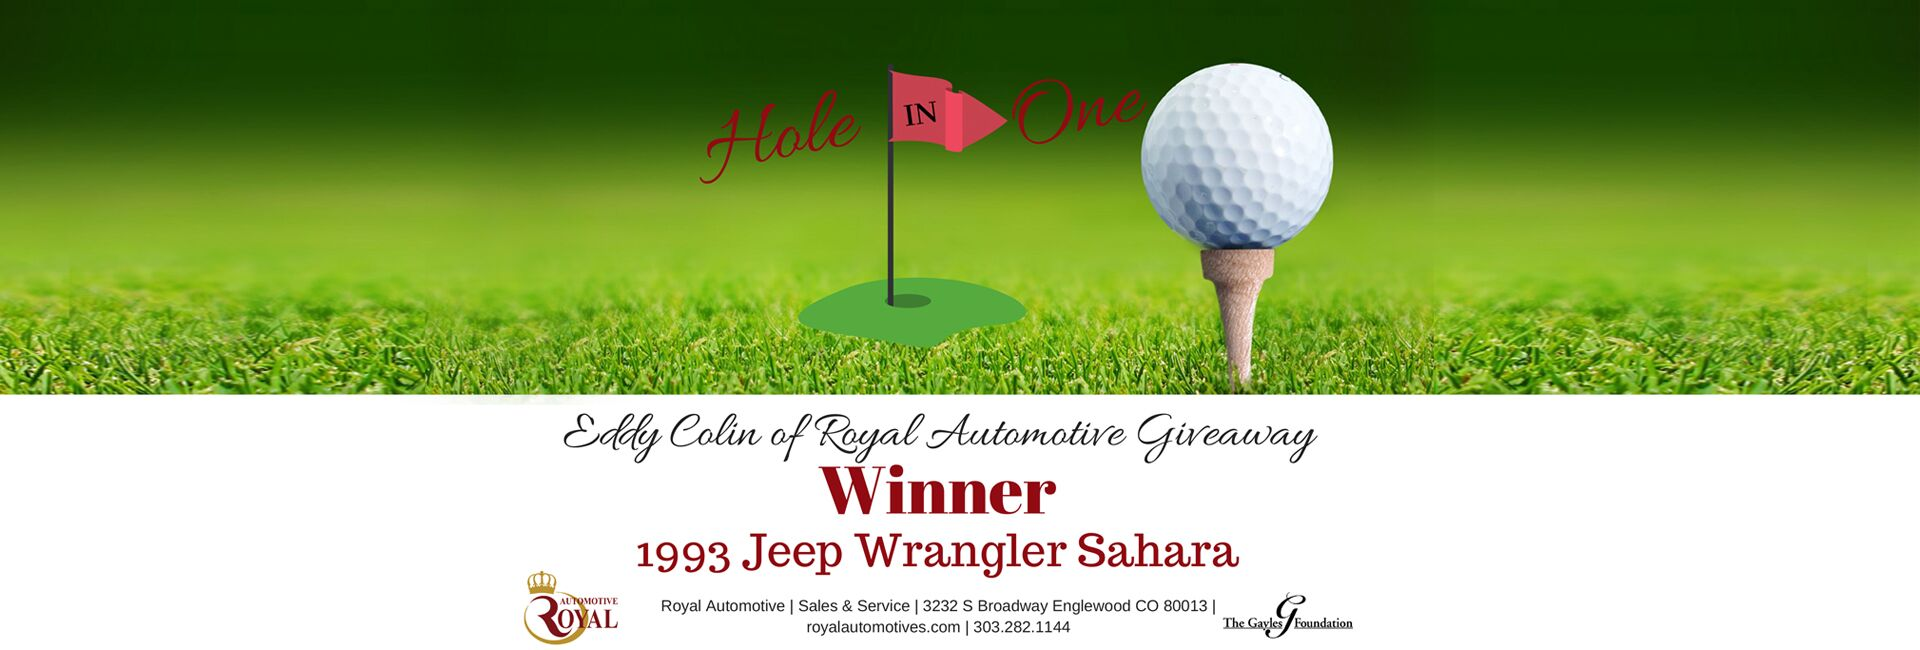 Royal Automotive Jeep Wrangler Giveaway at Charity Golf Tournament